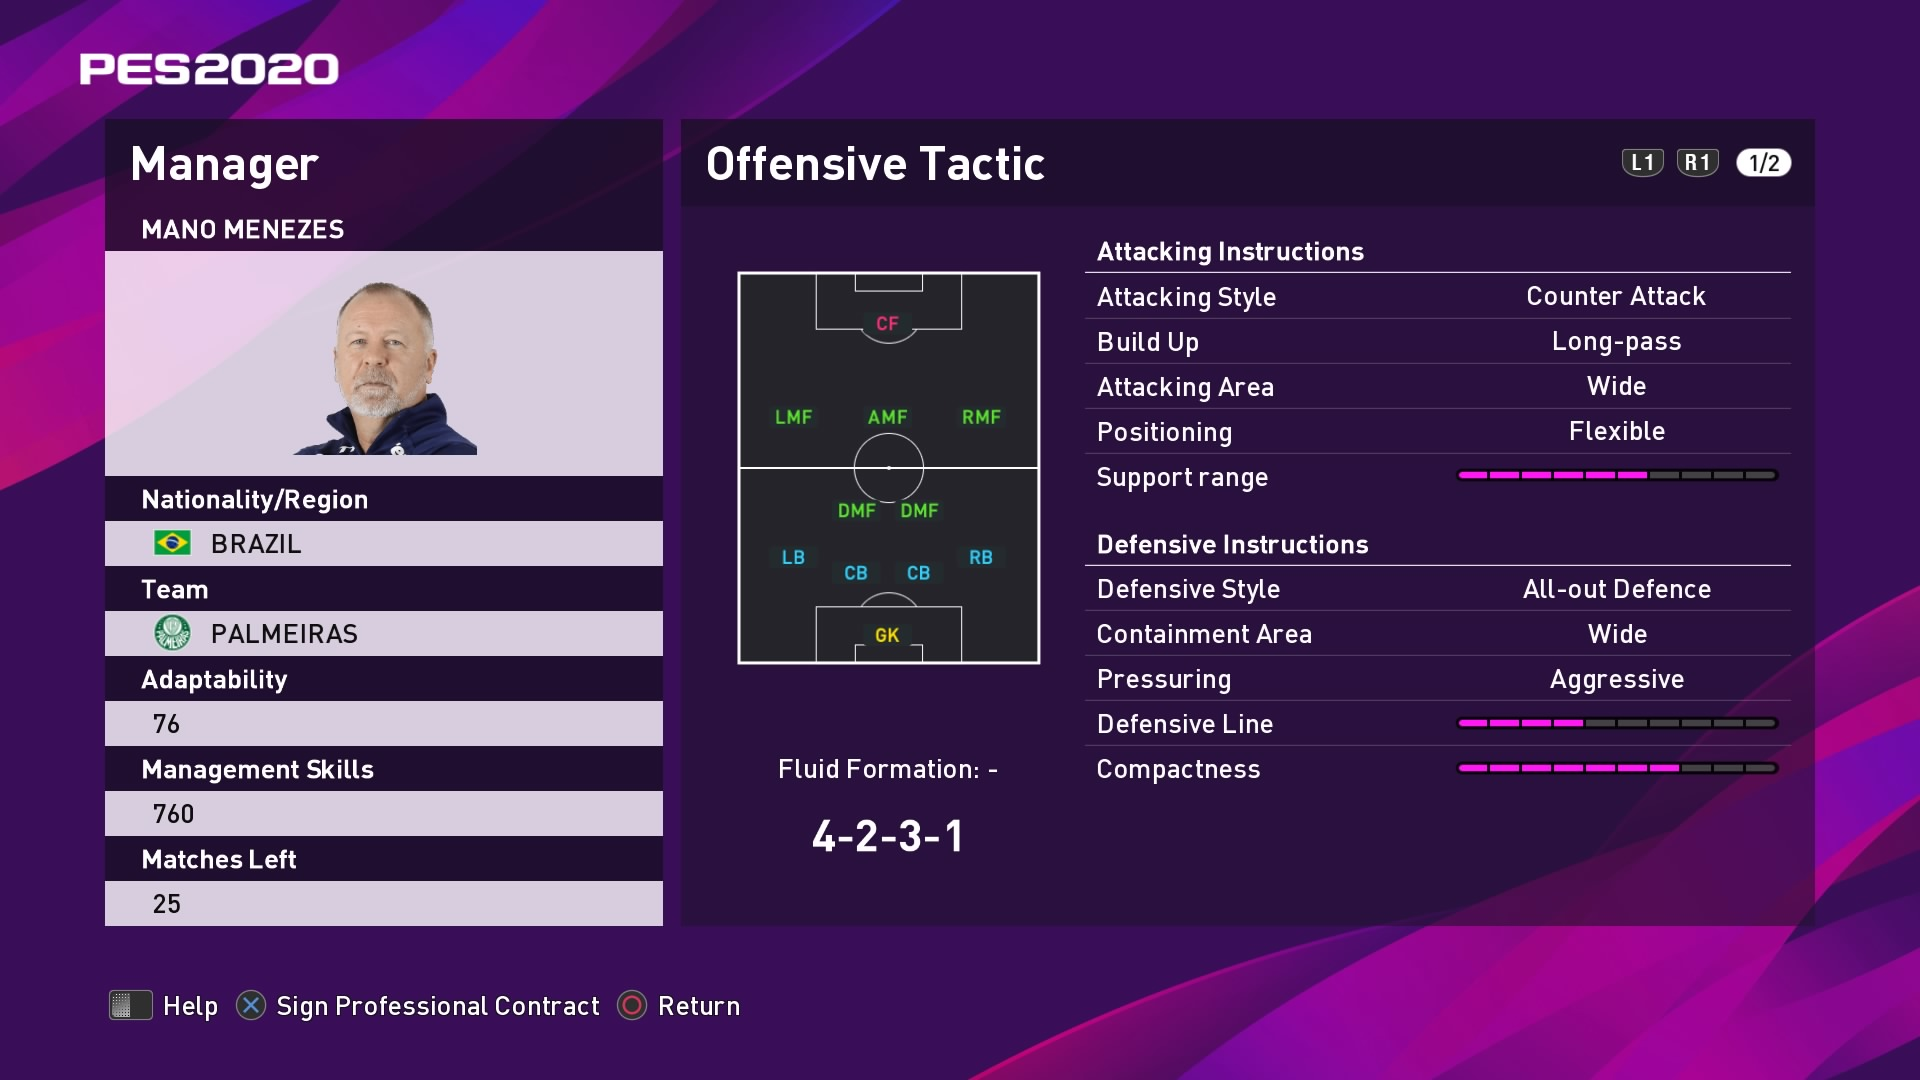 Mano Menezes Offensive Tactic in PES 2020 myClub